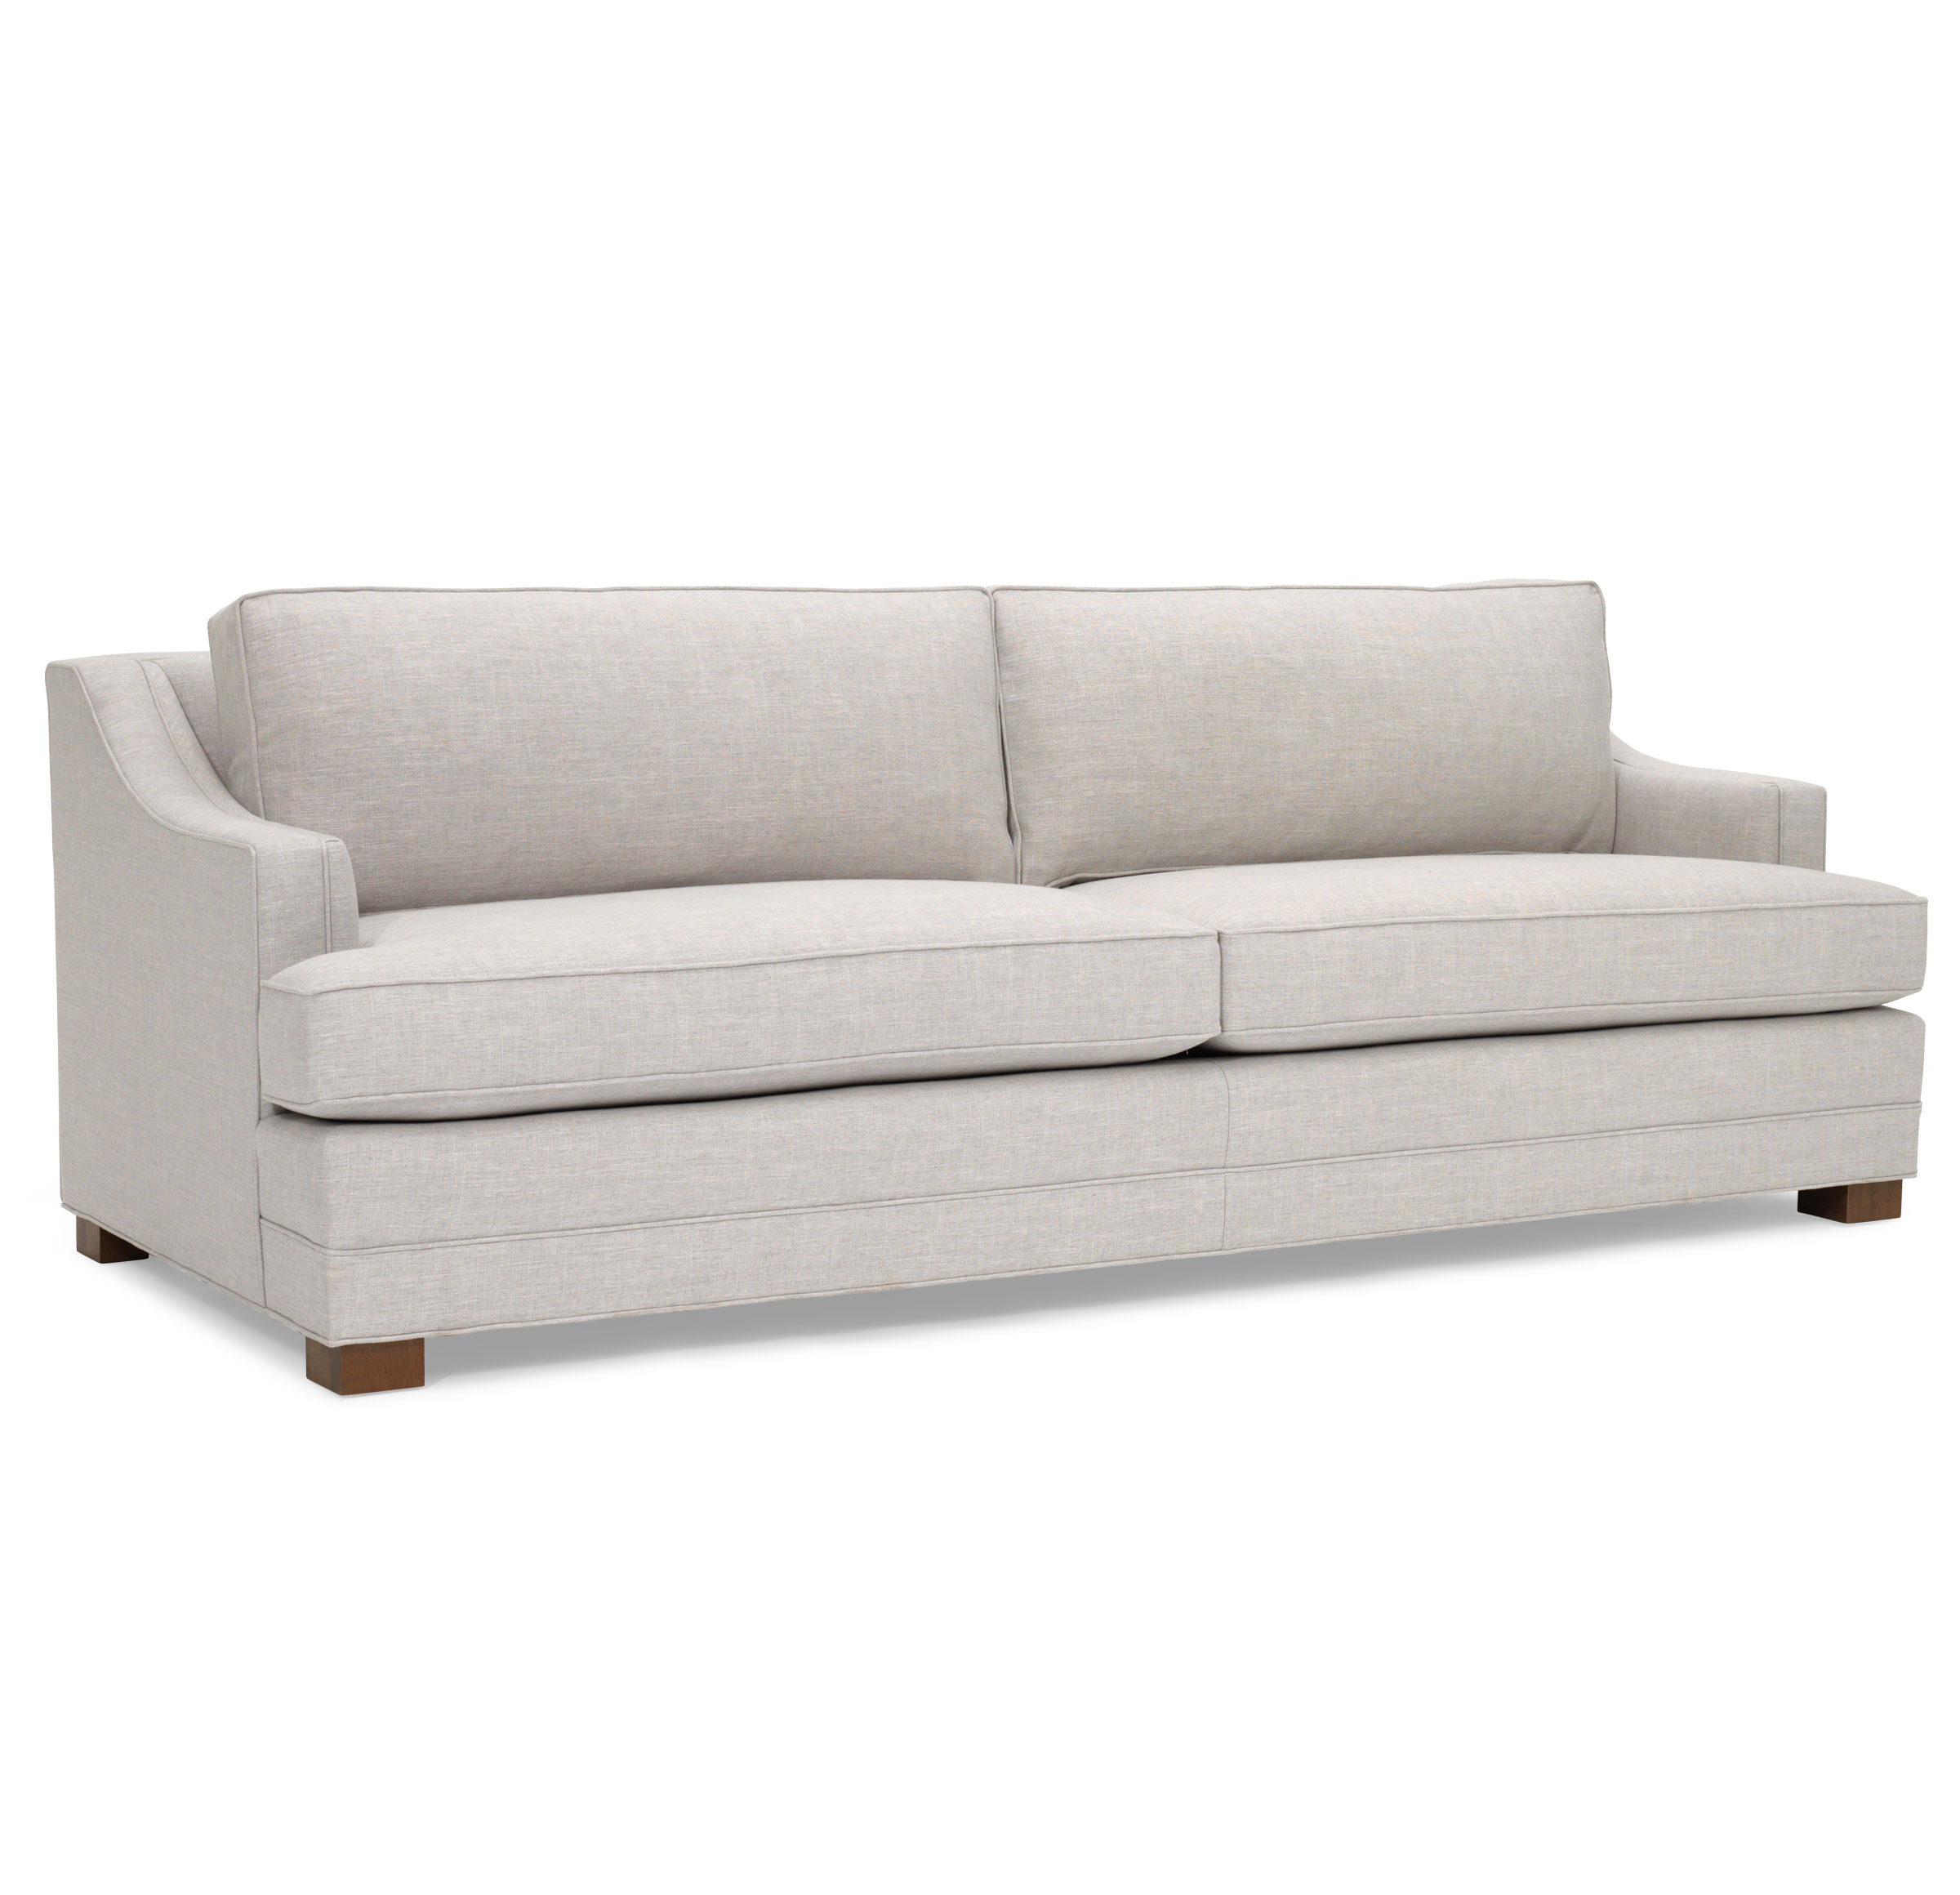 KEATON SLOPE ARM SOFA STUDIO DEPTH, NUANCE - DOVE, hi-res